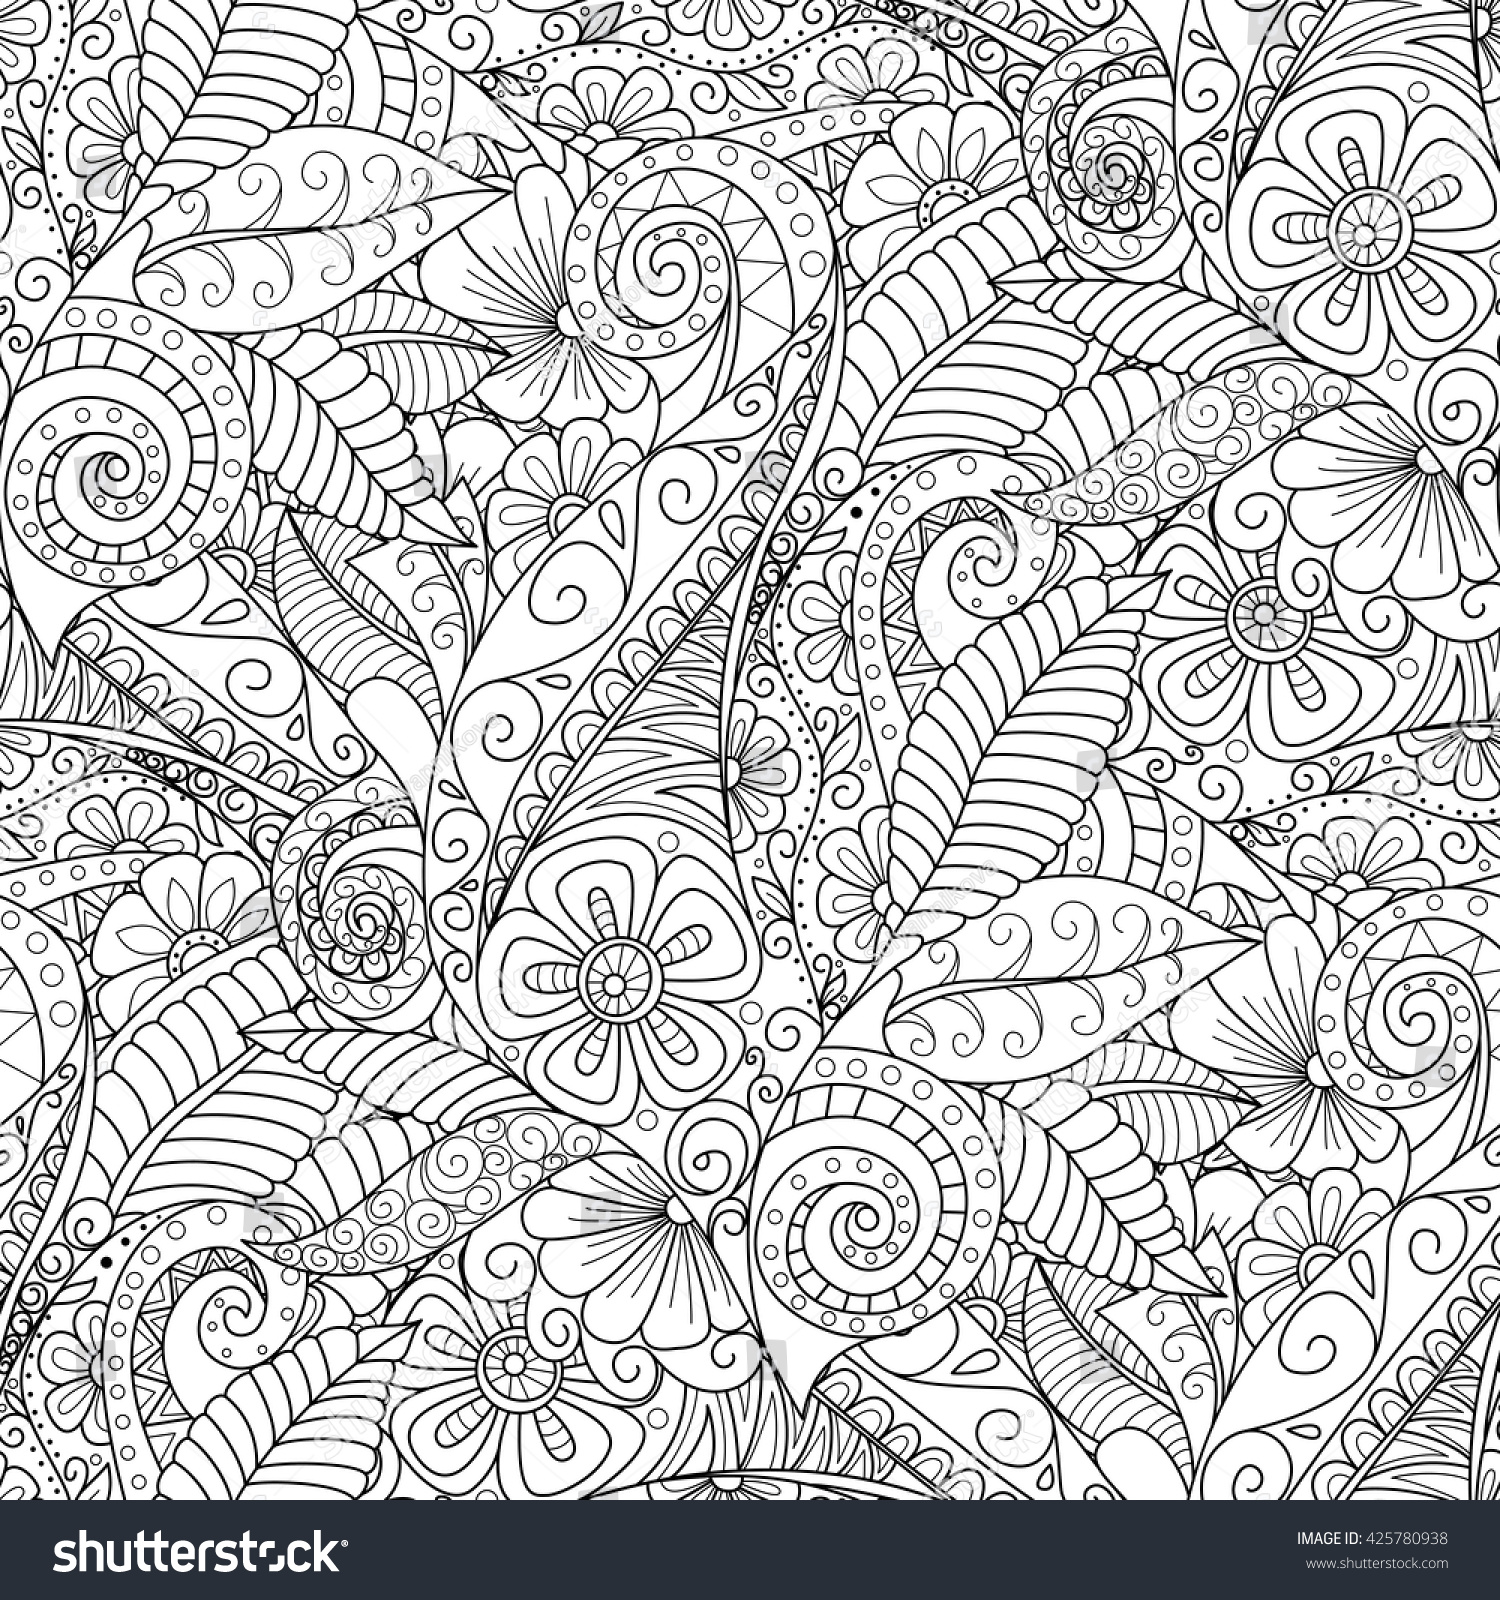 stock vector black and white seamless floral background design for adults and older children coloring book